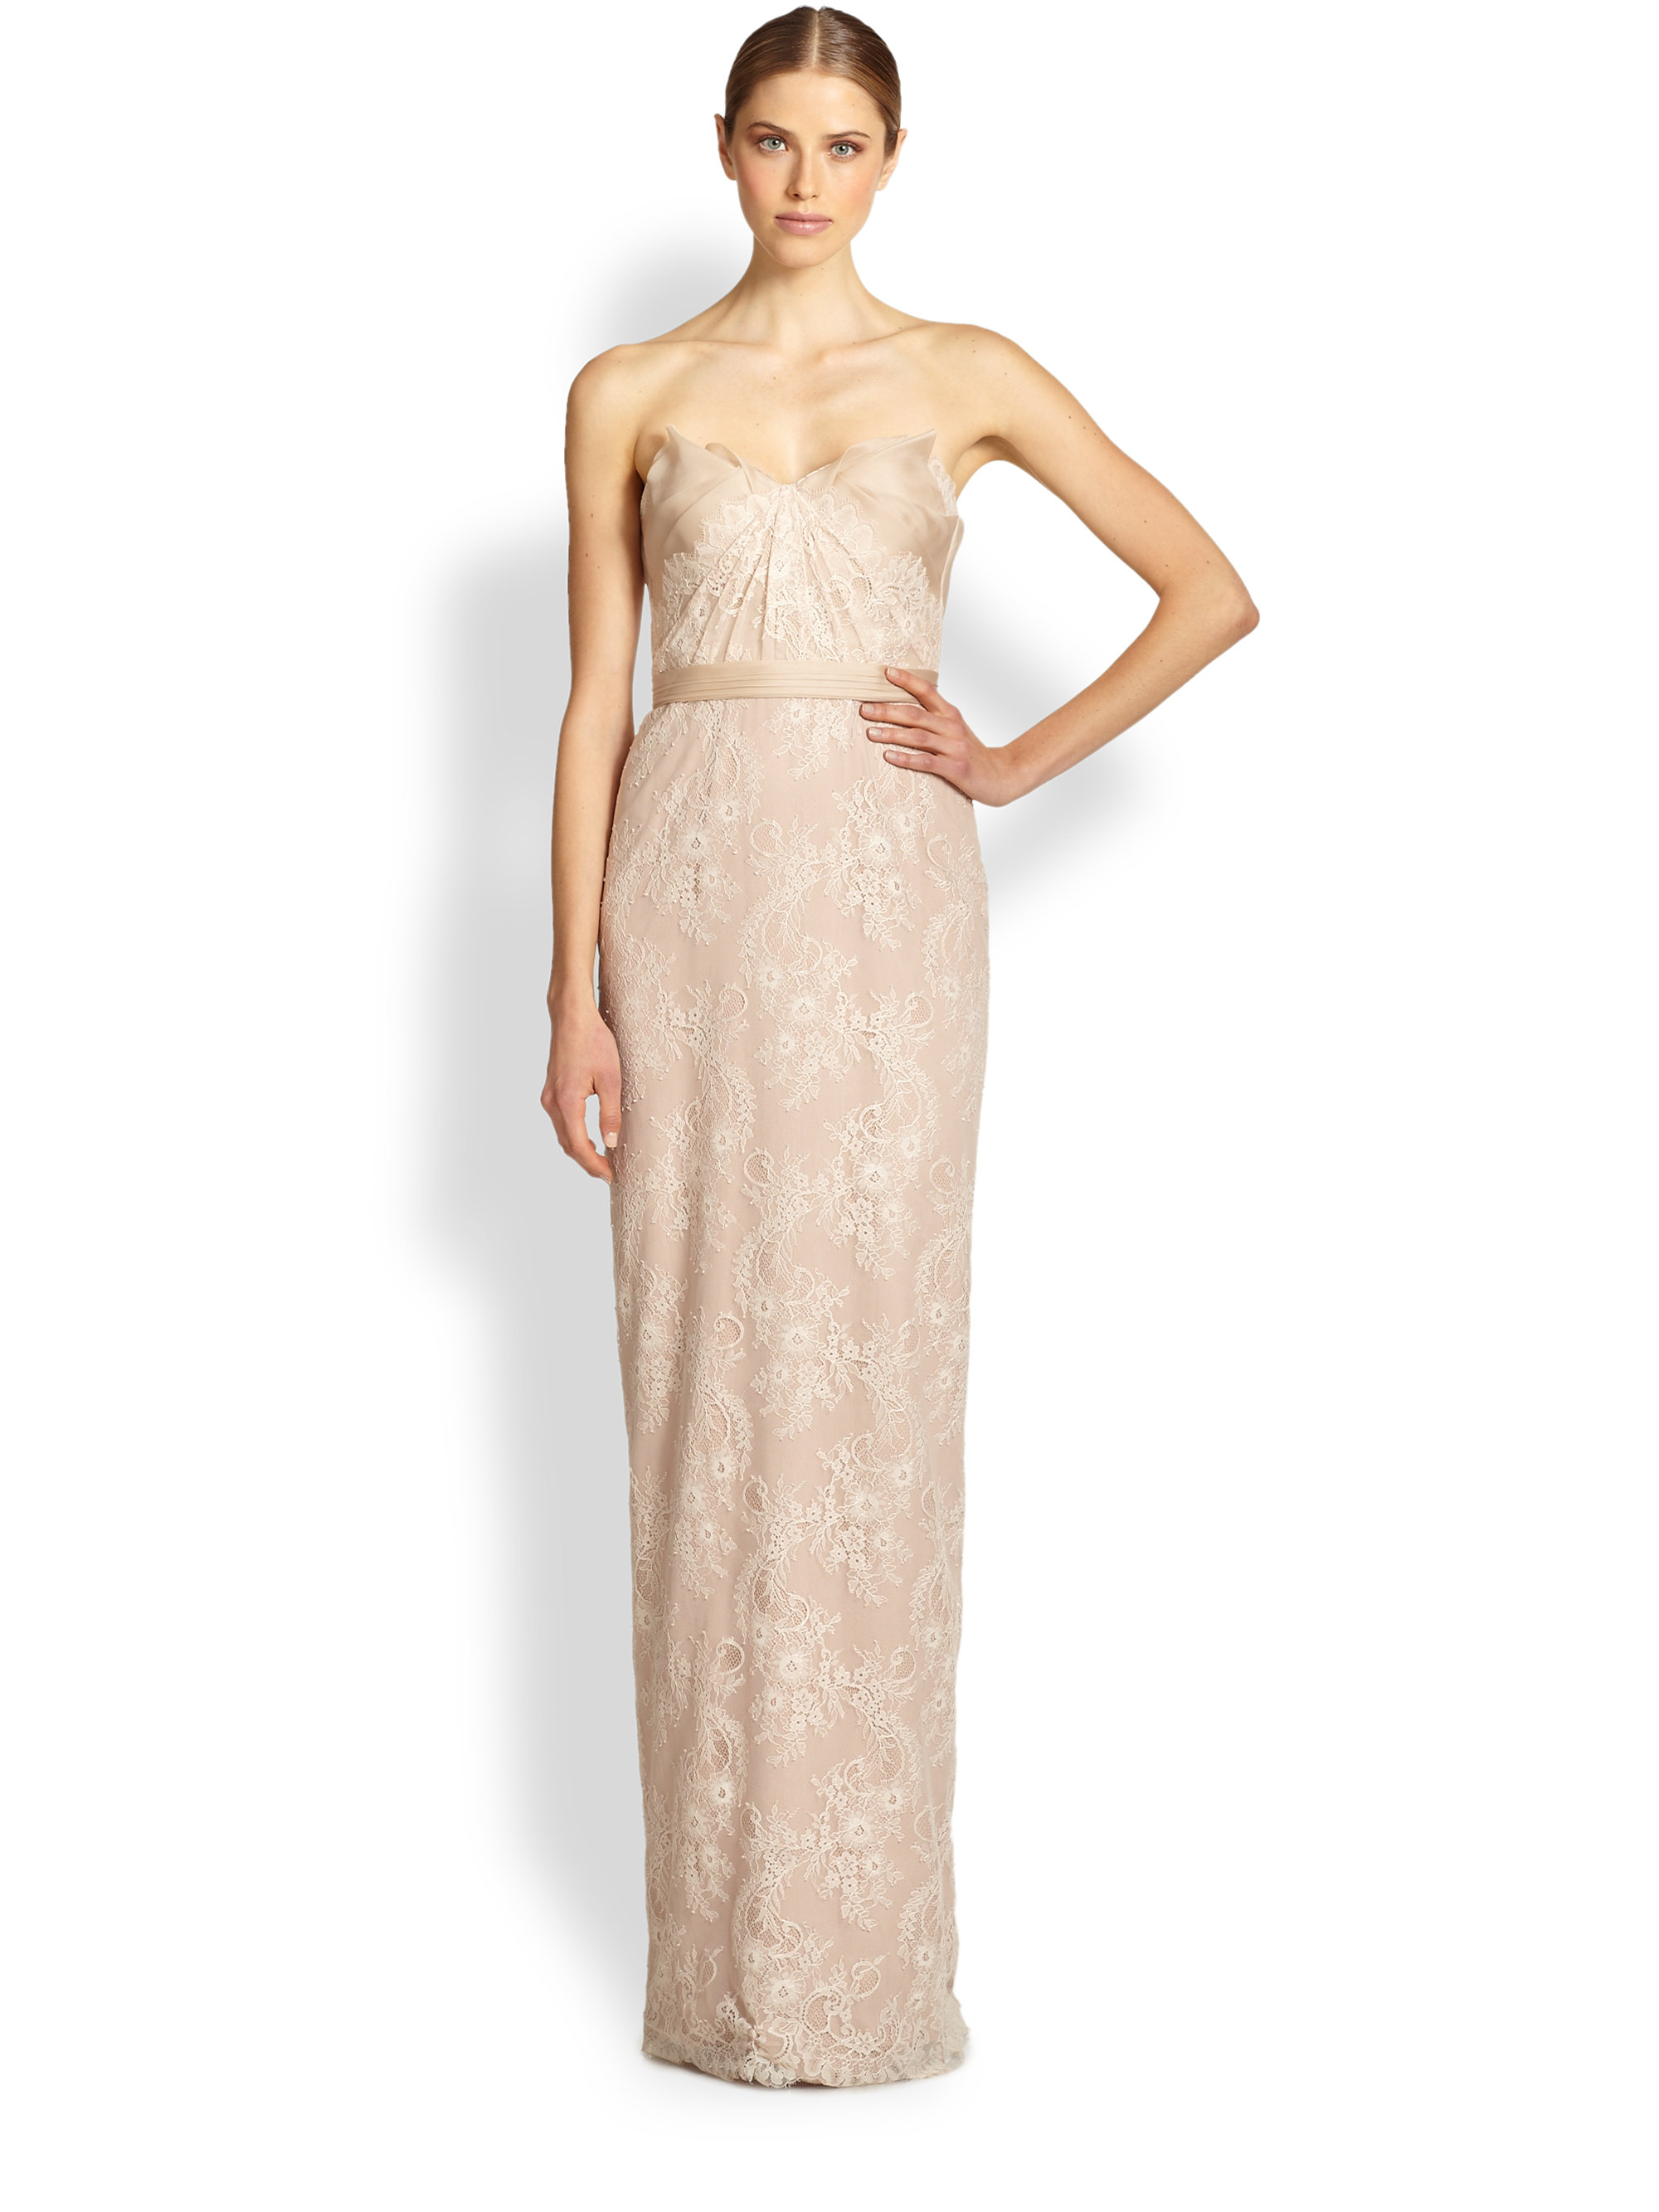 Notte by marchesa Draped Strapless Lace Gown in Natural